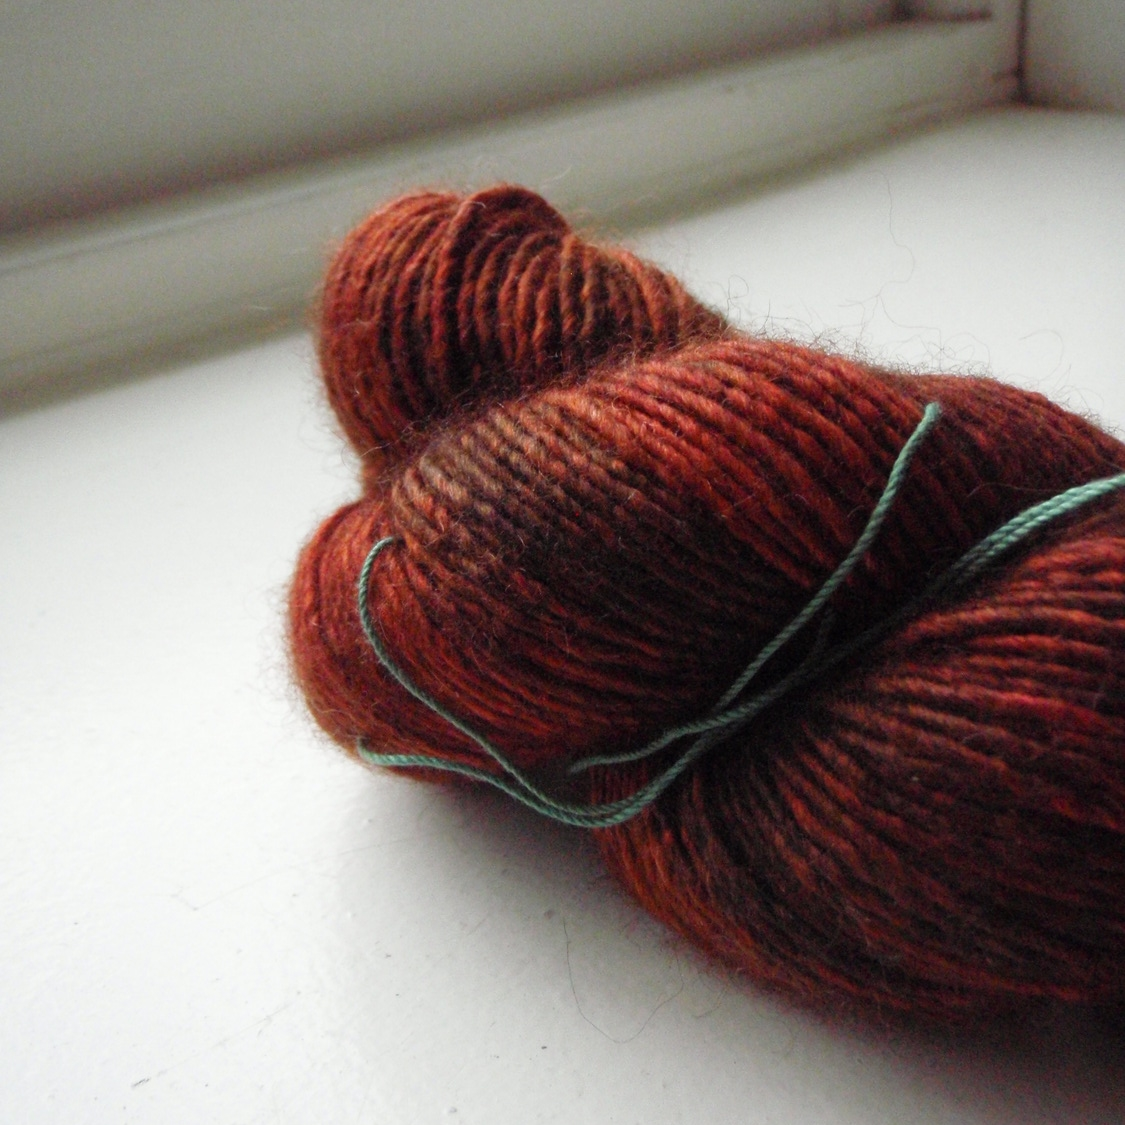 The original skein - from 2011